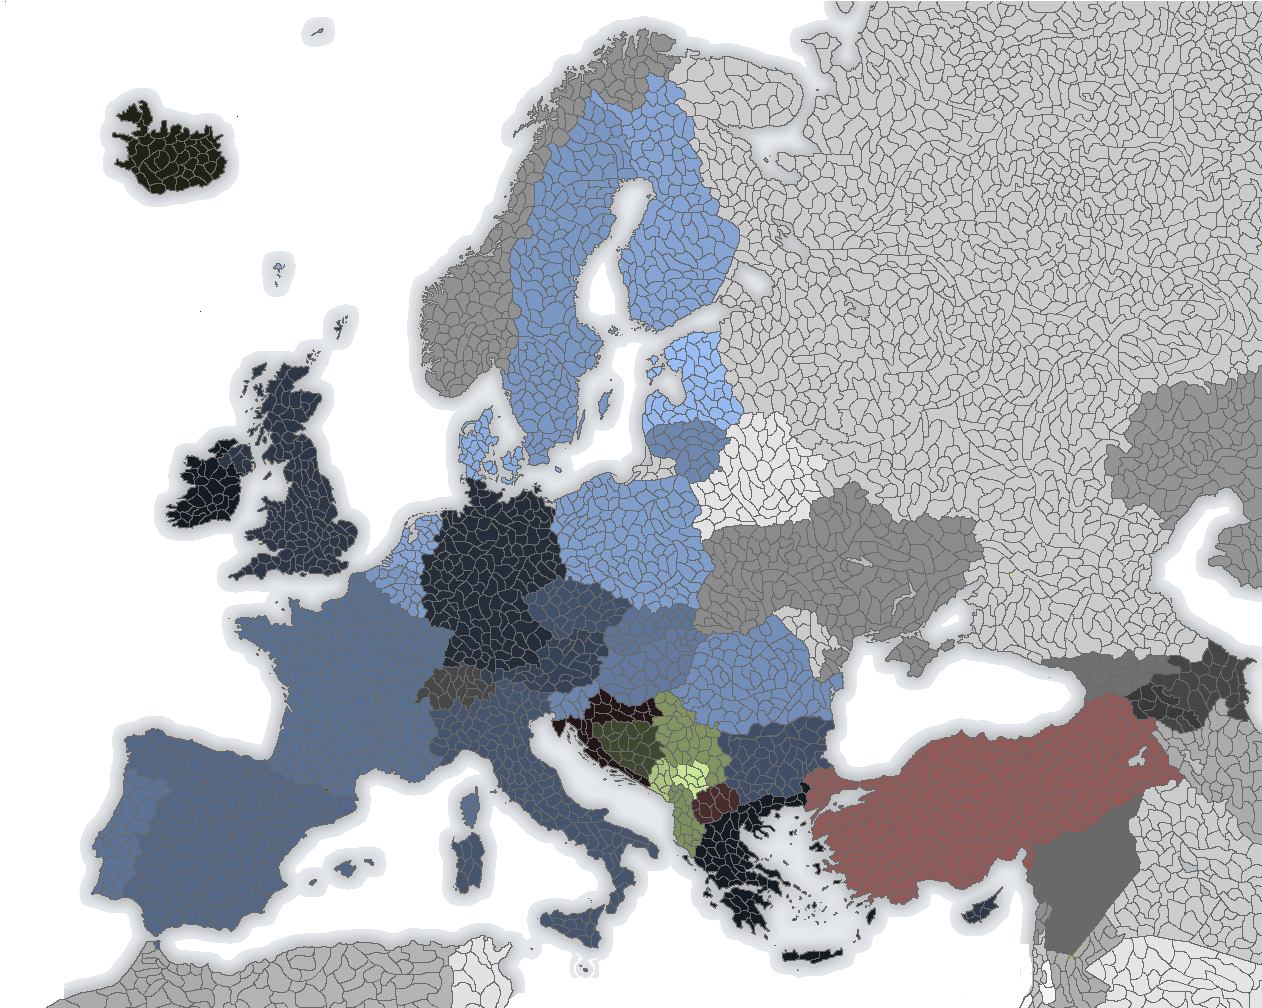 A blank map of Europe   Alternate History Discussion Here s the above posted blank map divided up into modern countries  The  blue countries are members of the EU  the red are candidate states  the  green are